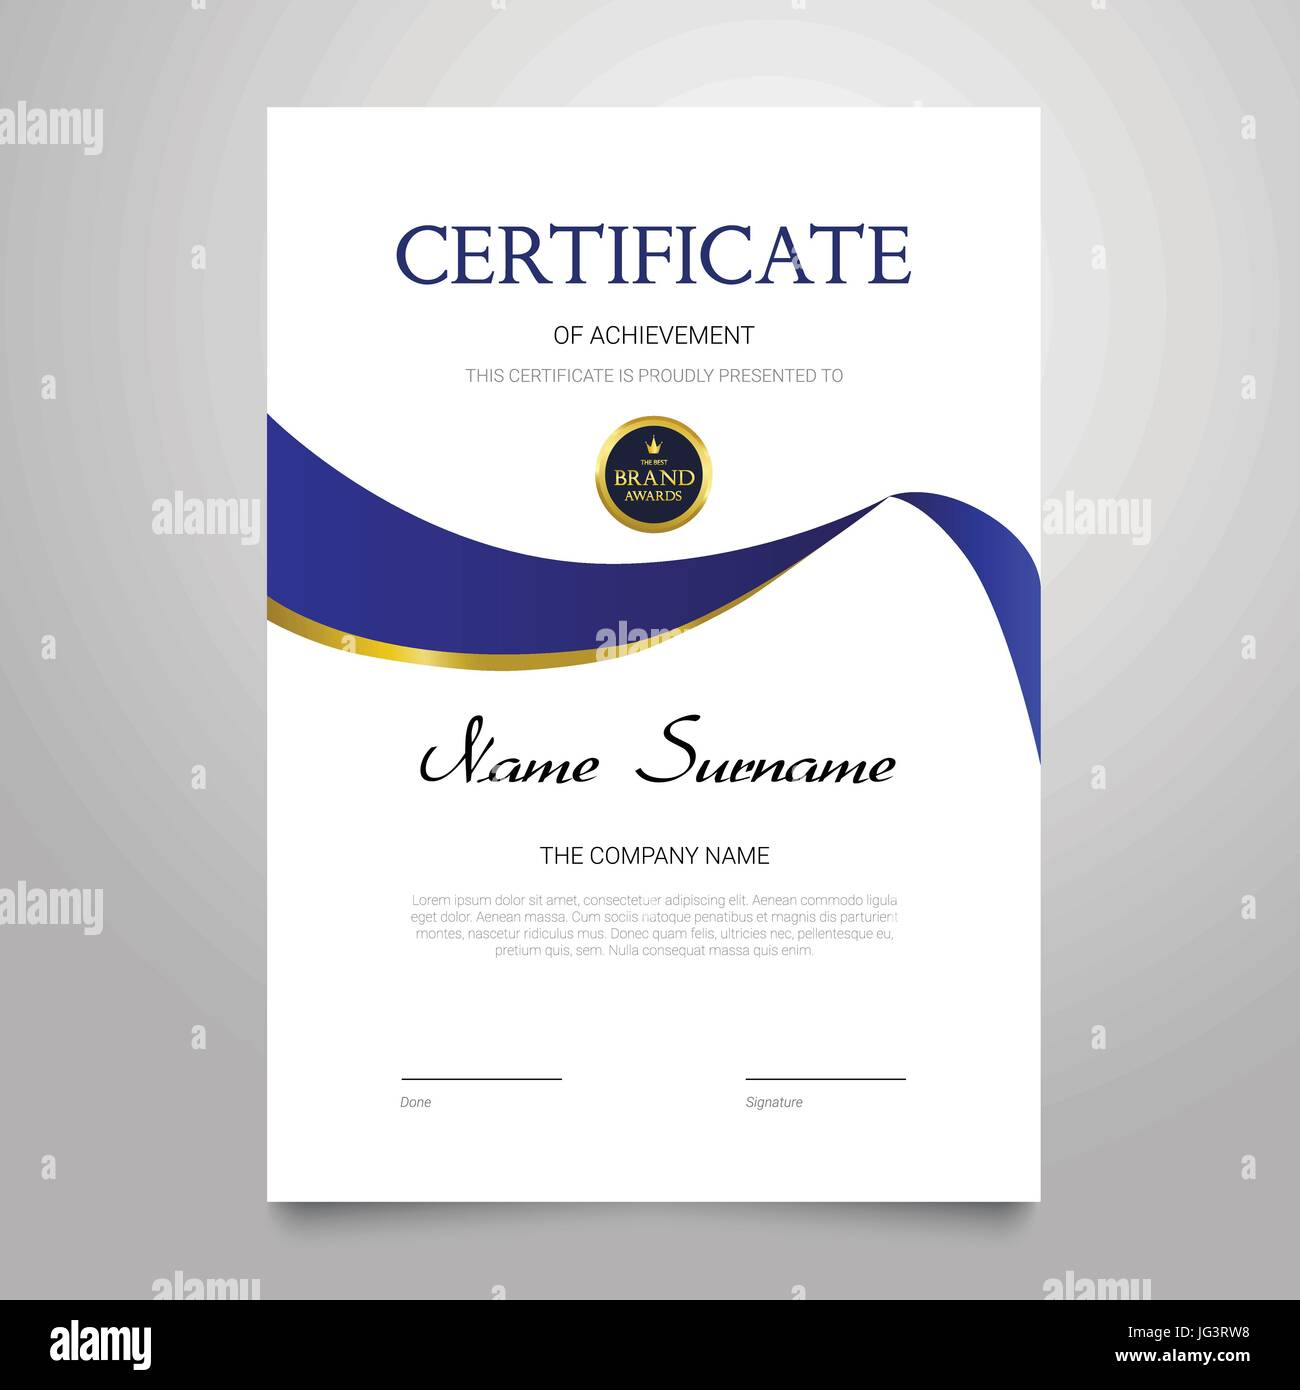 Certificate Template Modern Vertical Elegant Vector Document With